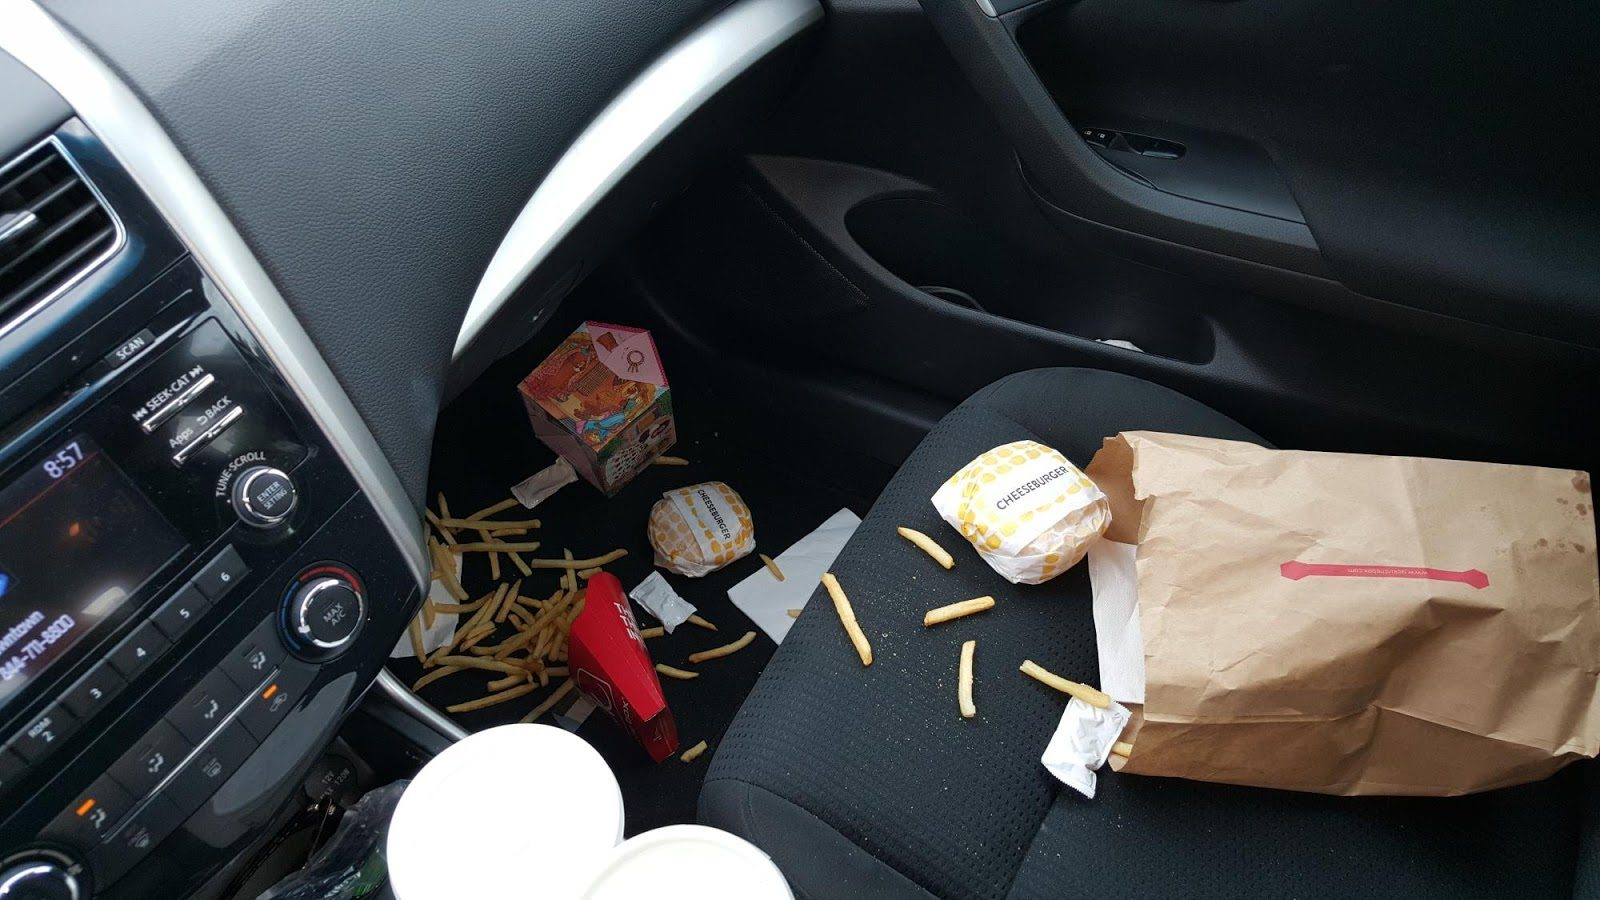 Get rid of food odors from your car